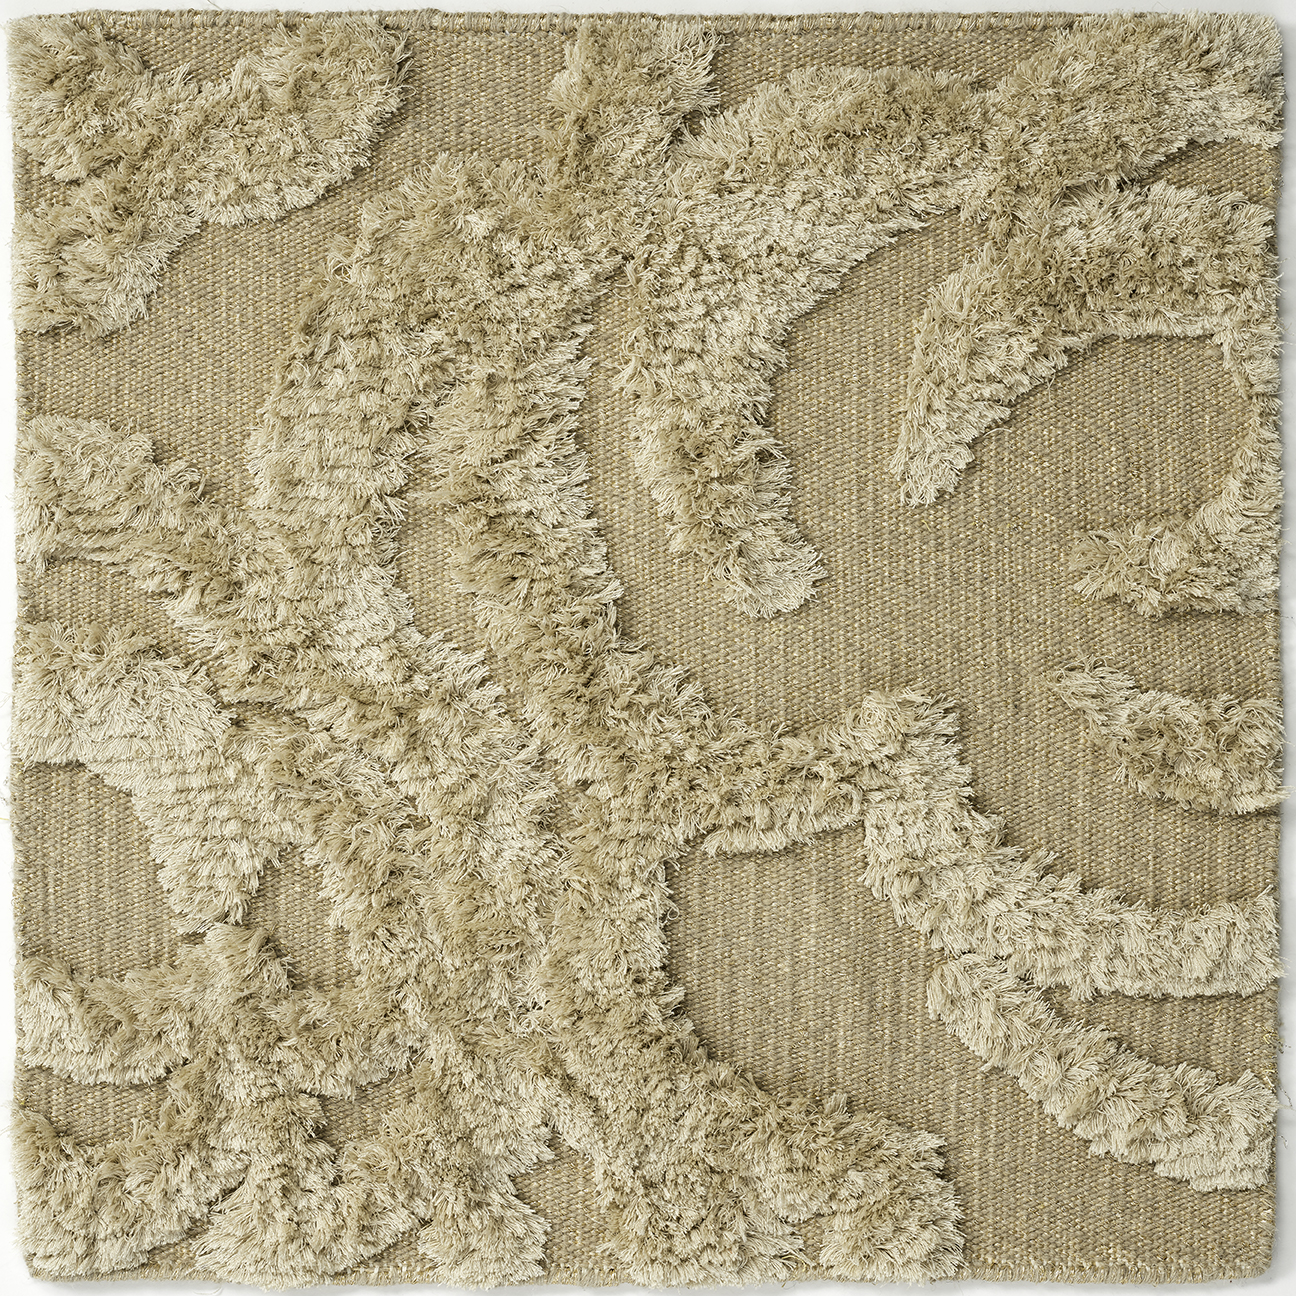 Hand-knotted, wool matka silk rug with abstract design in beige gold neutral cream.